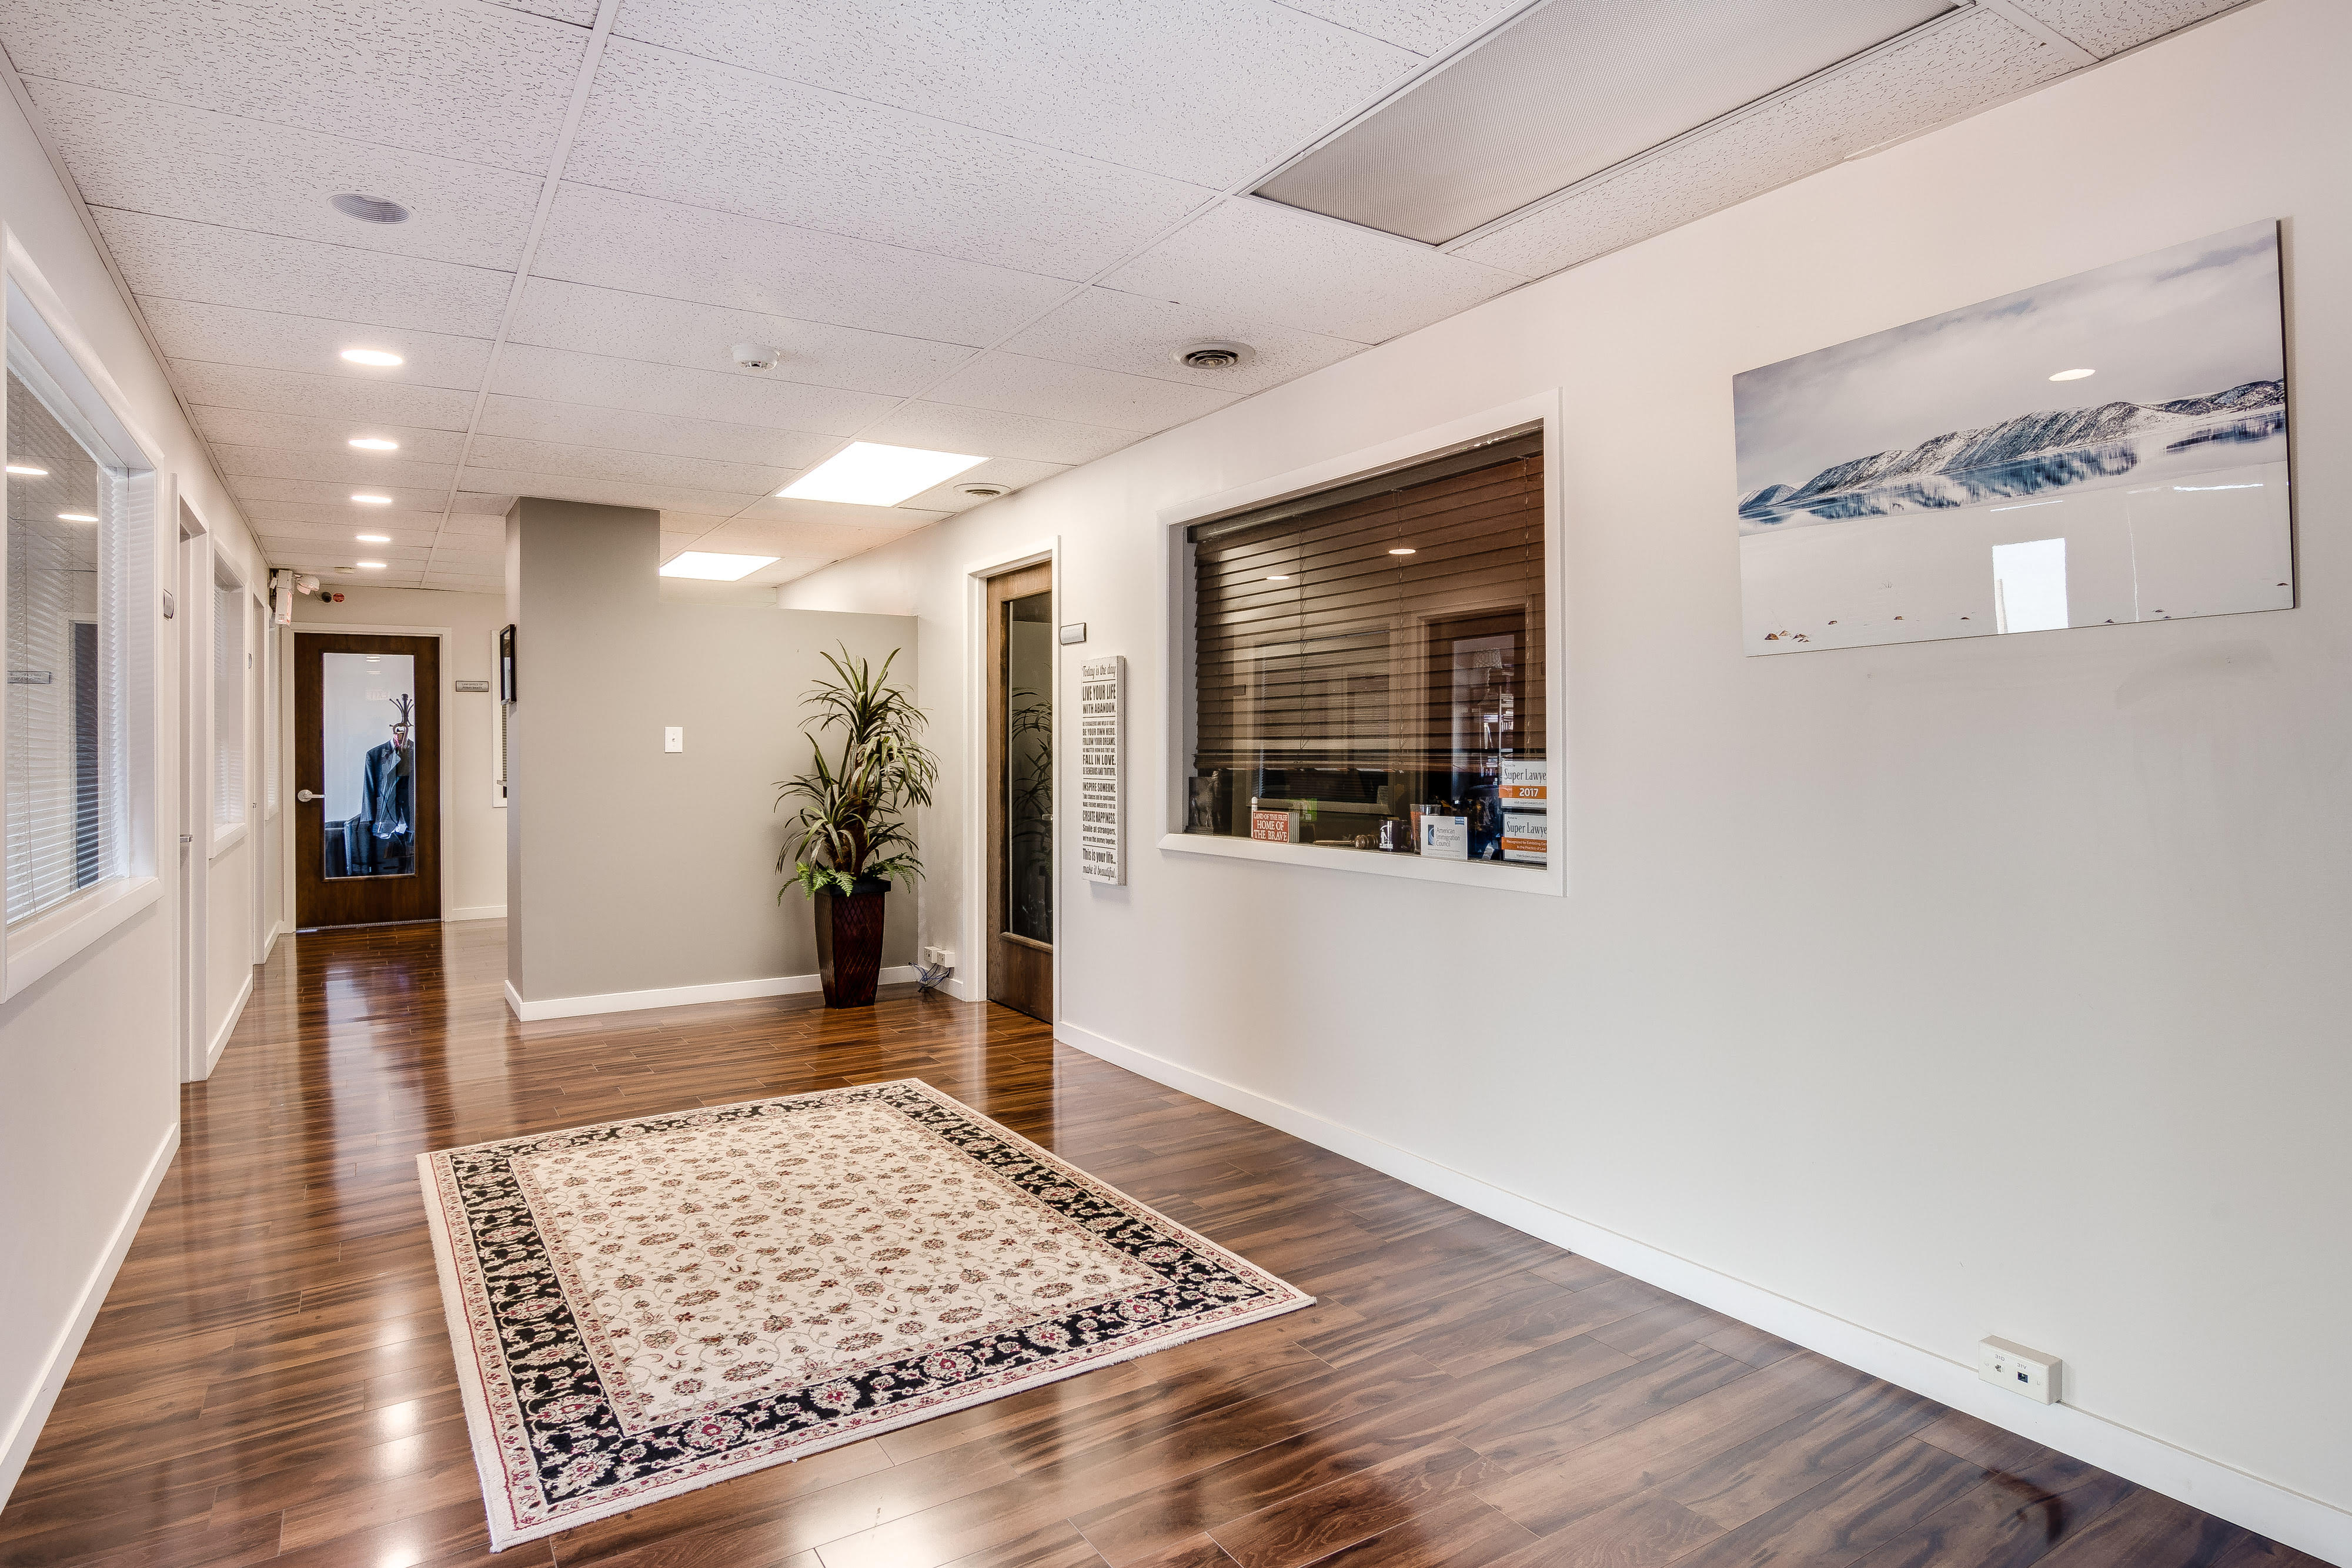 Chicago Virtual Office Space - Comfortable Commons Area